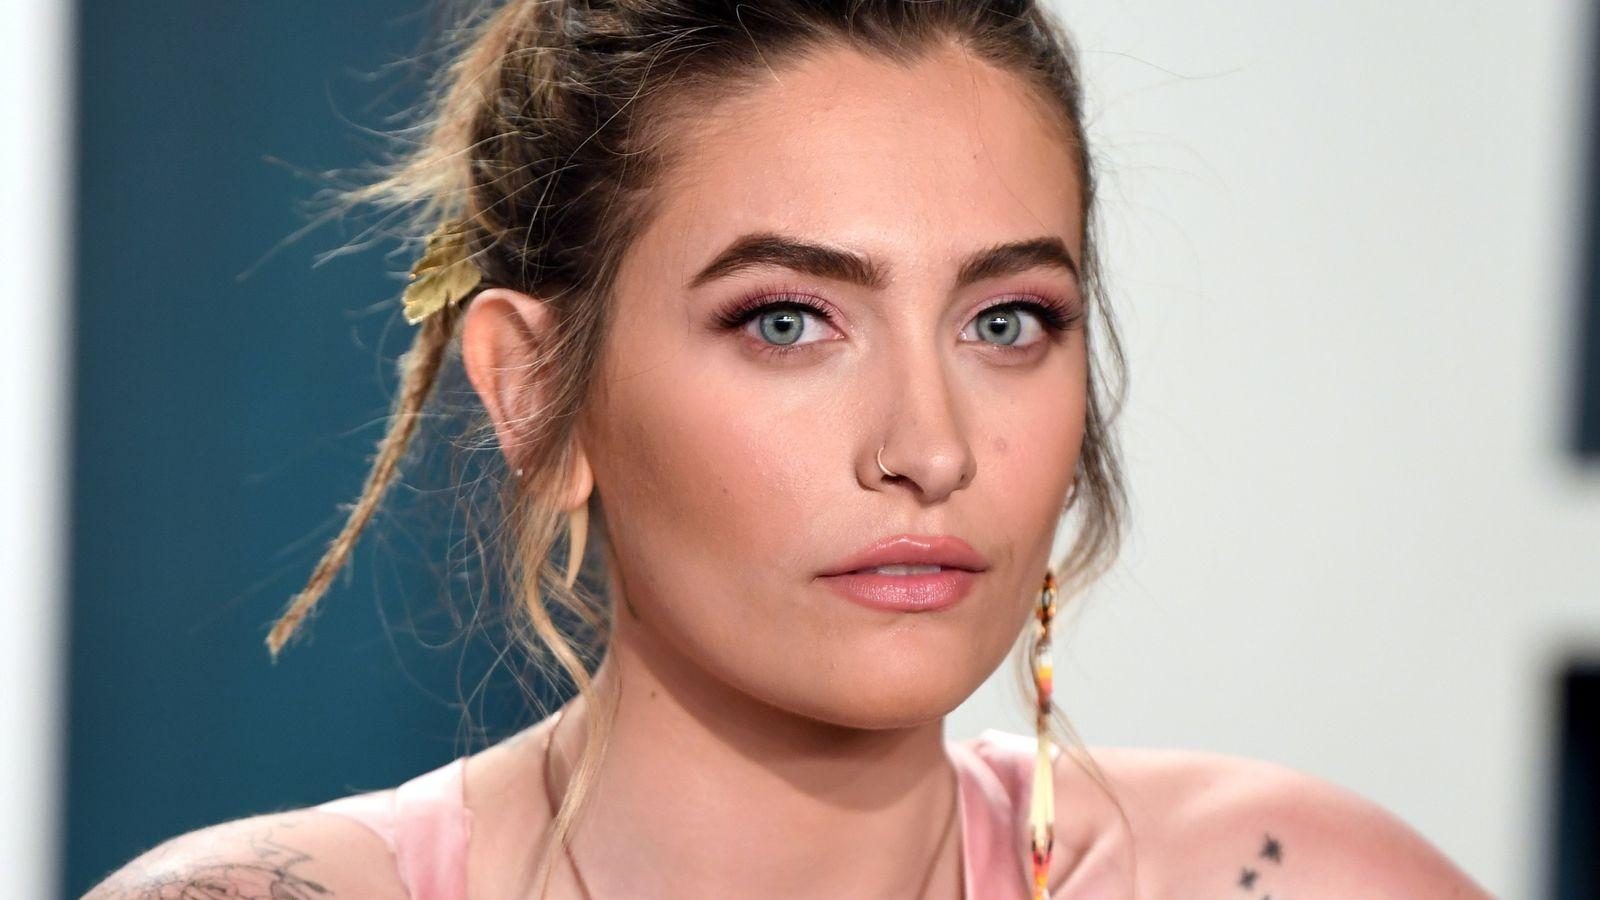 Paris Jackson Opens Up About The Severe PTSD She Developed Because Of The Constant Paparazzi Stalking As A Child